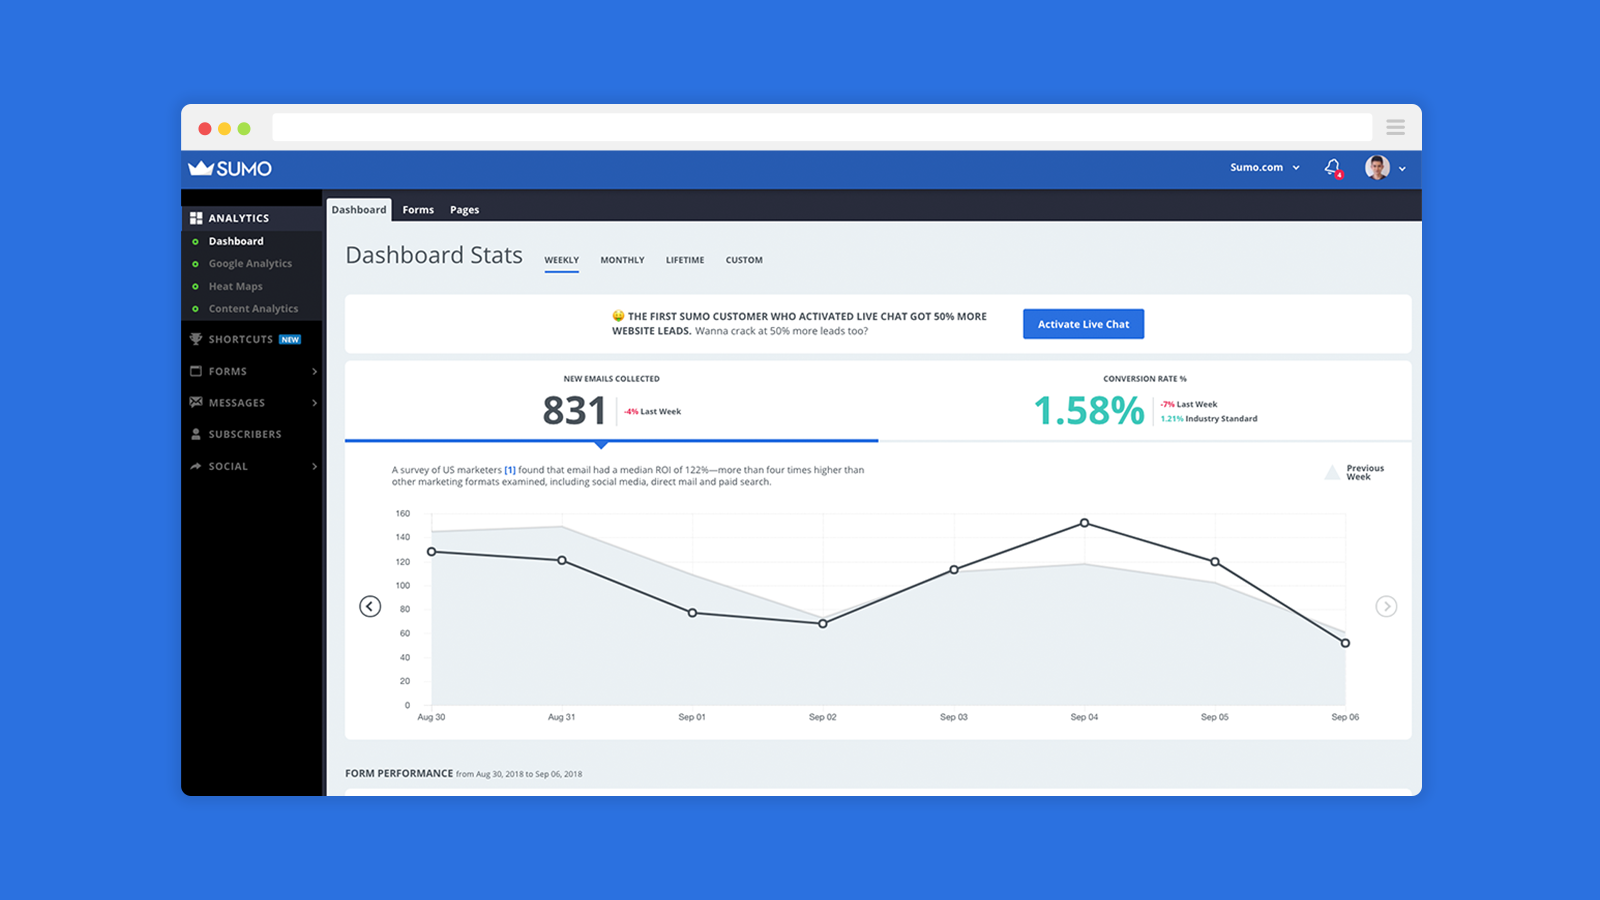 ROI-focused dashboard that provide valuable tips and insights